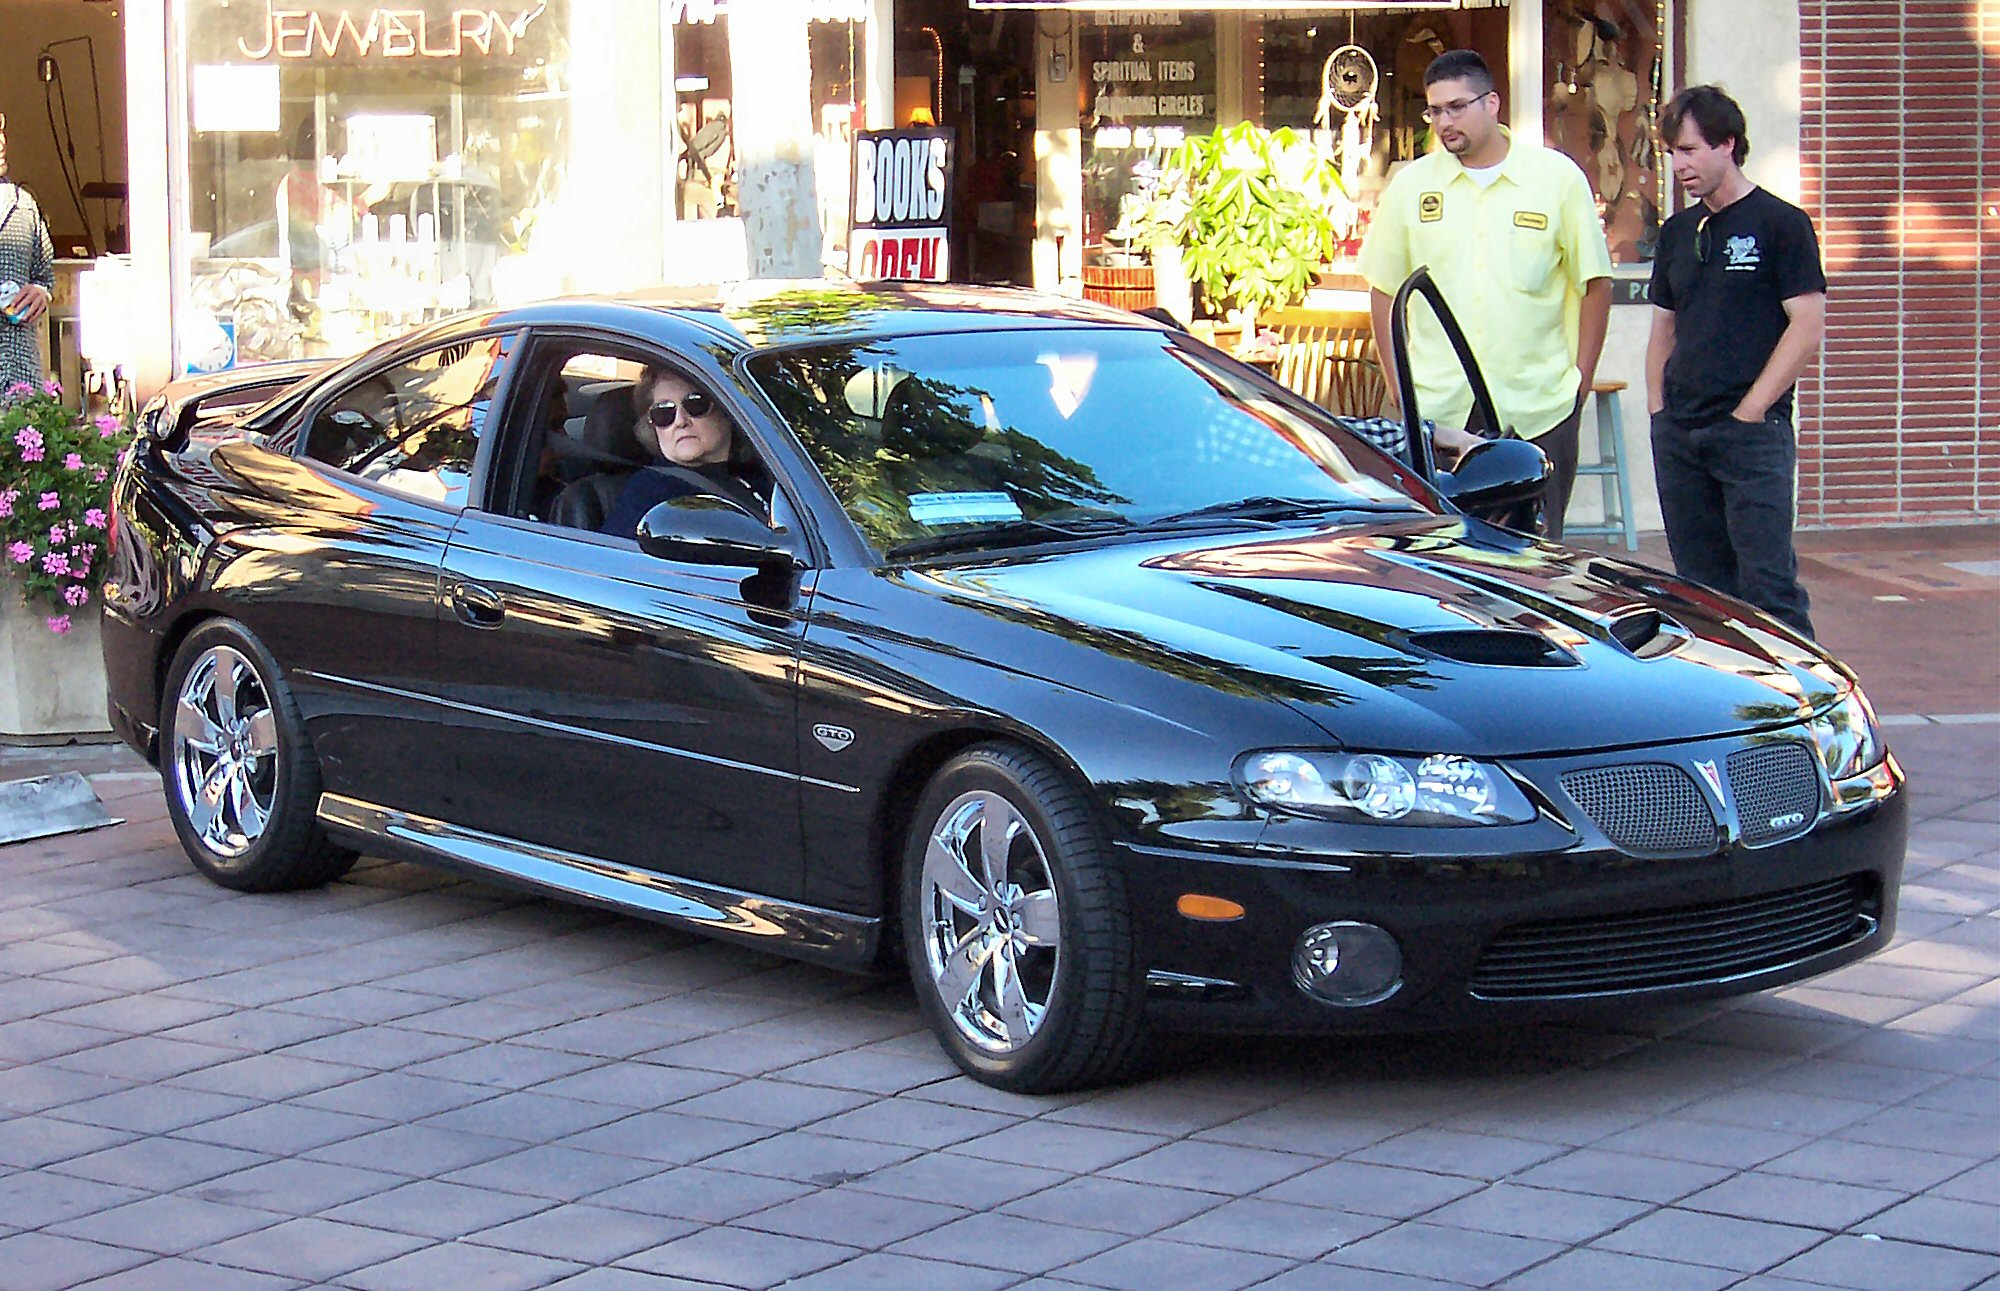 http://upload.wikimedia.org/wikipedia/commons/c/c4/2005_Pontiac_GTO.jpg